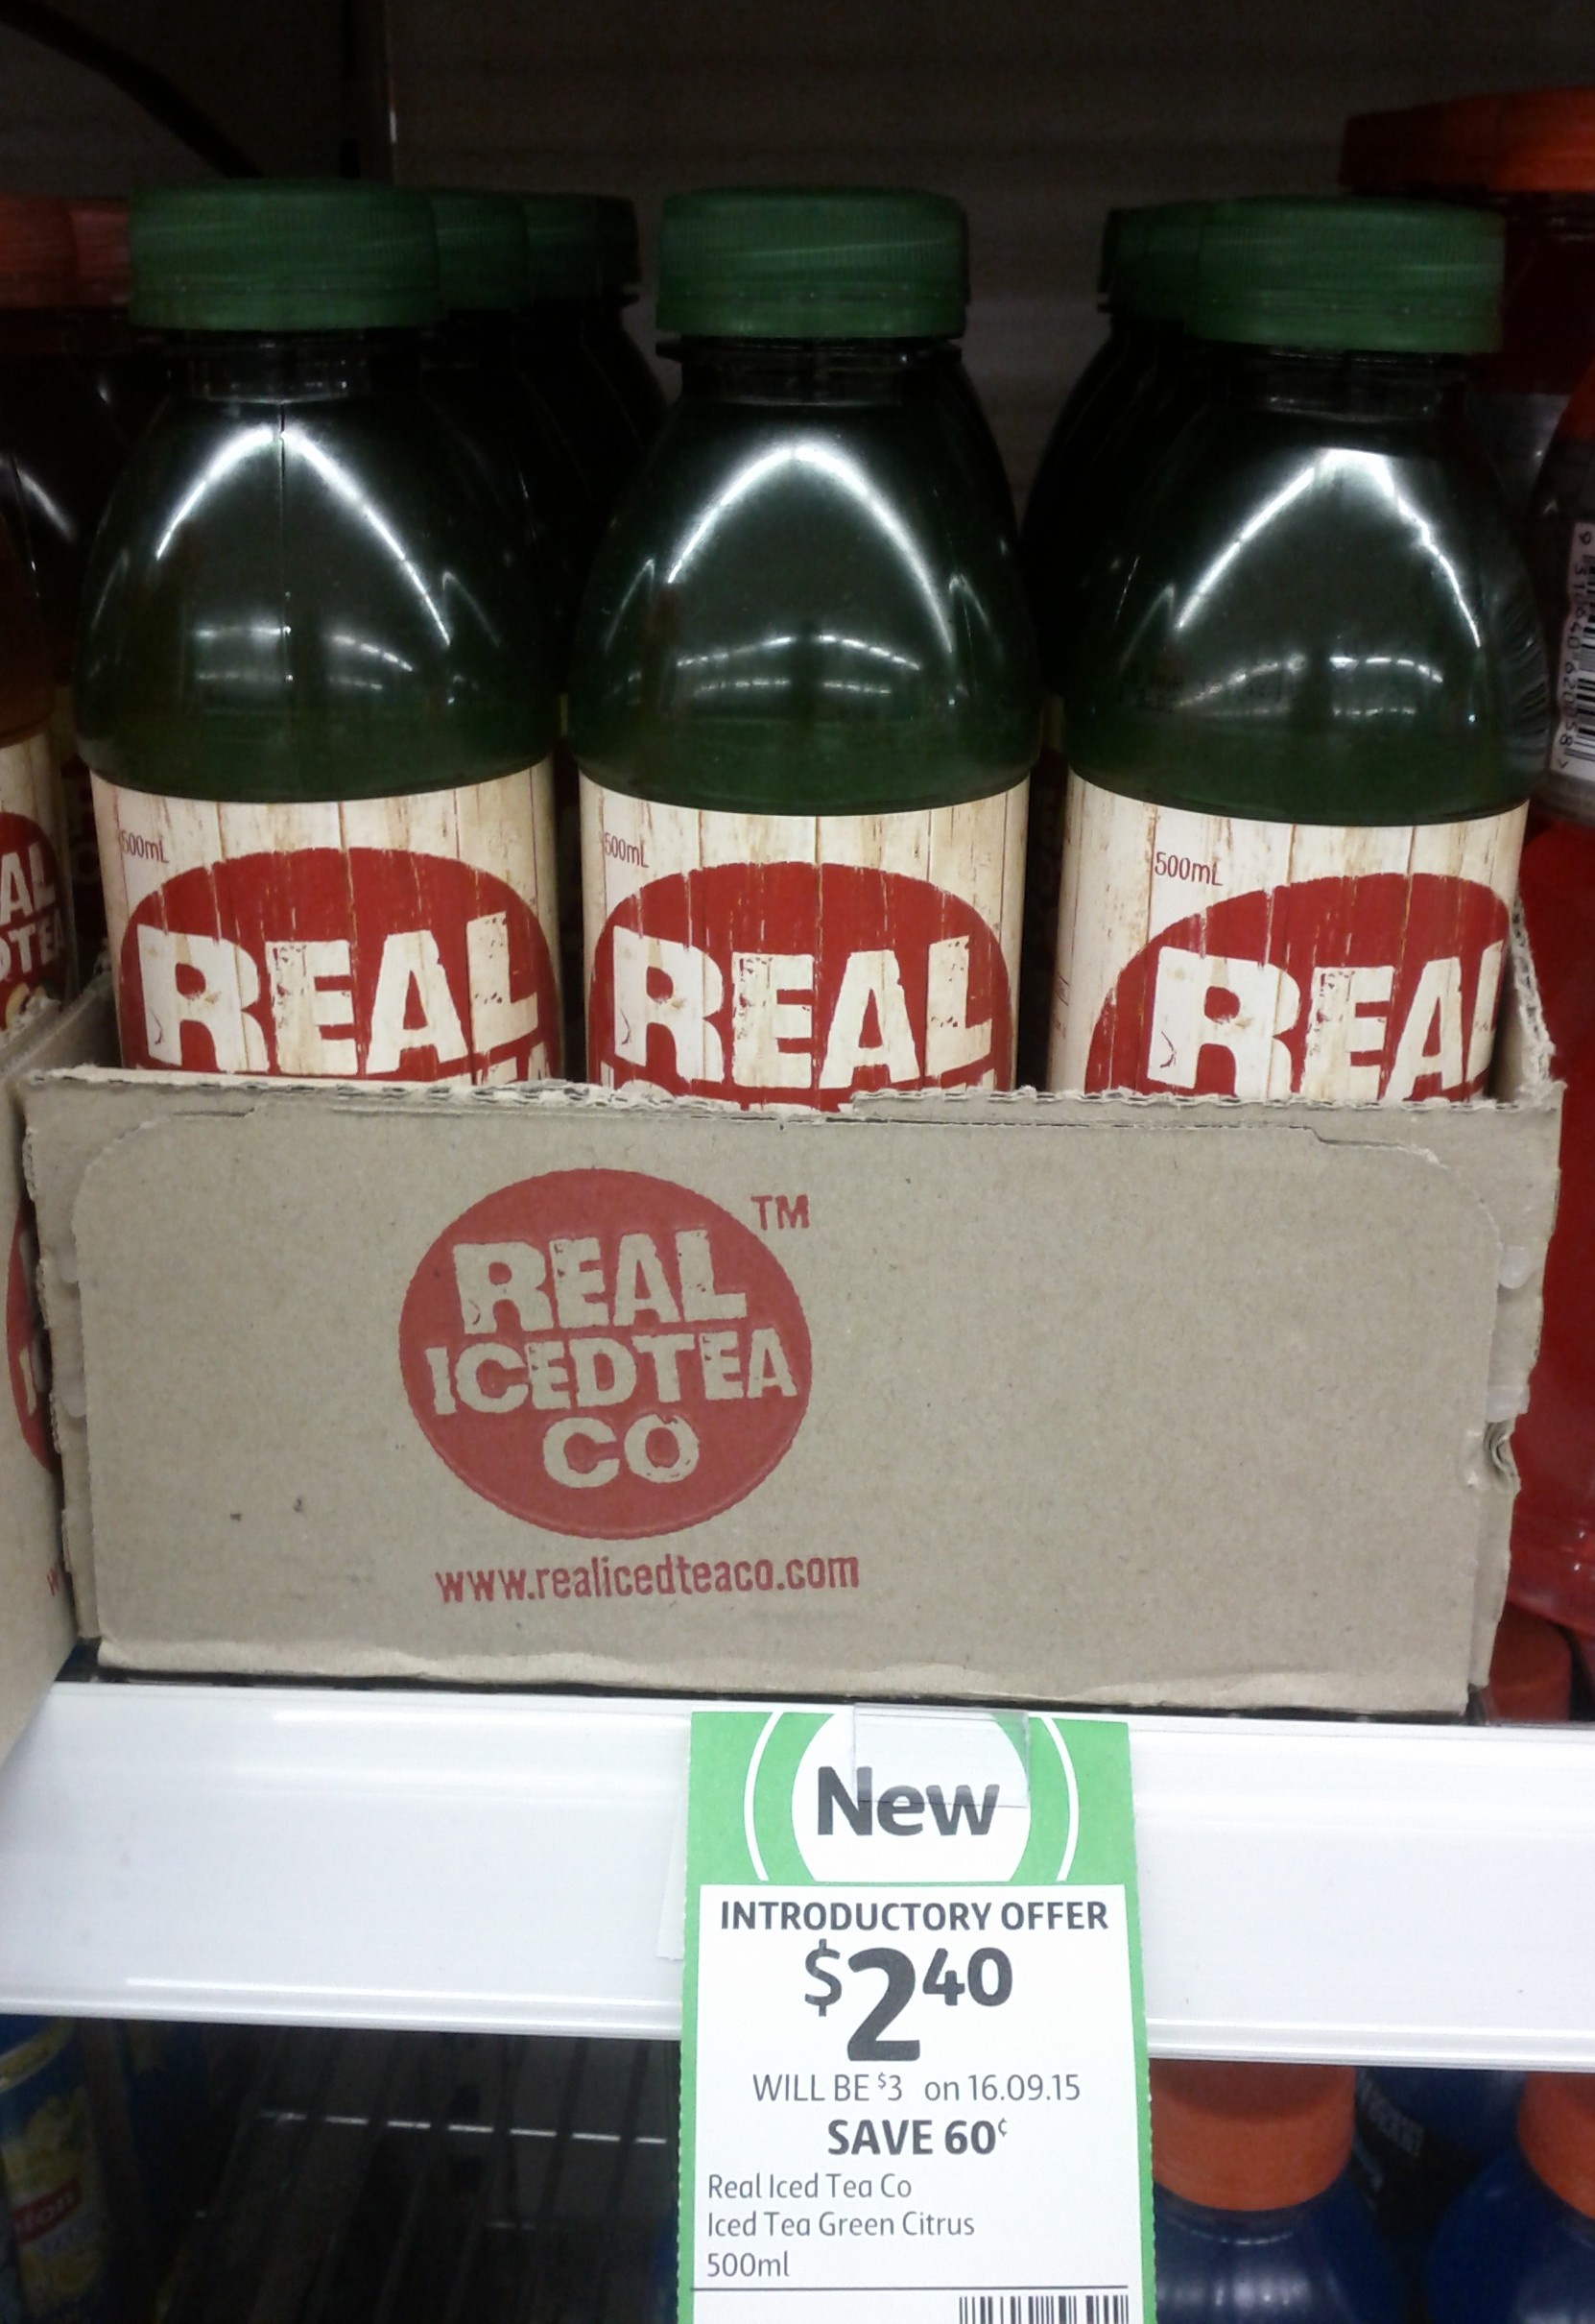 Real Iced Tea Co 500mL Green Citrus